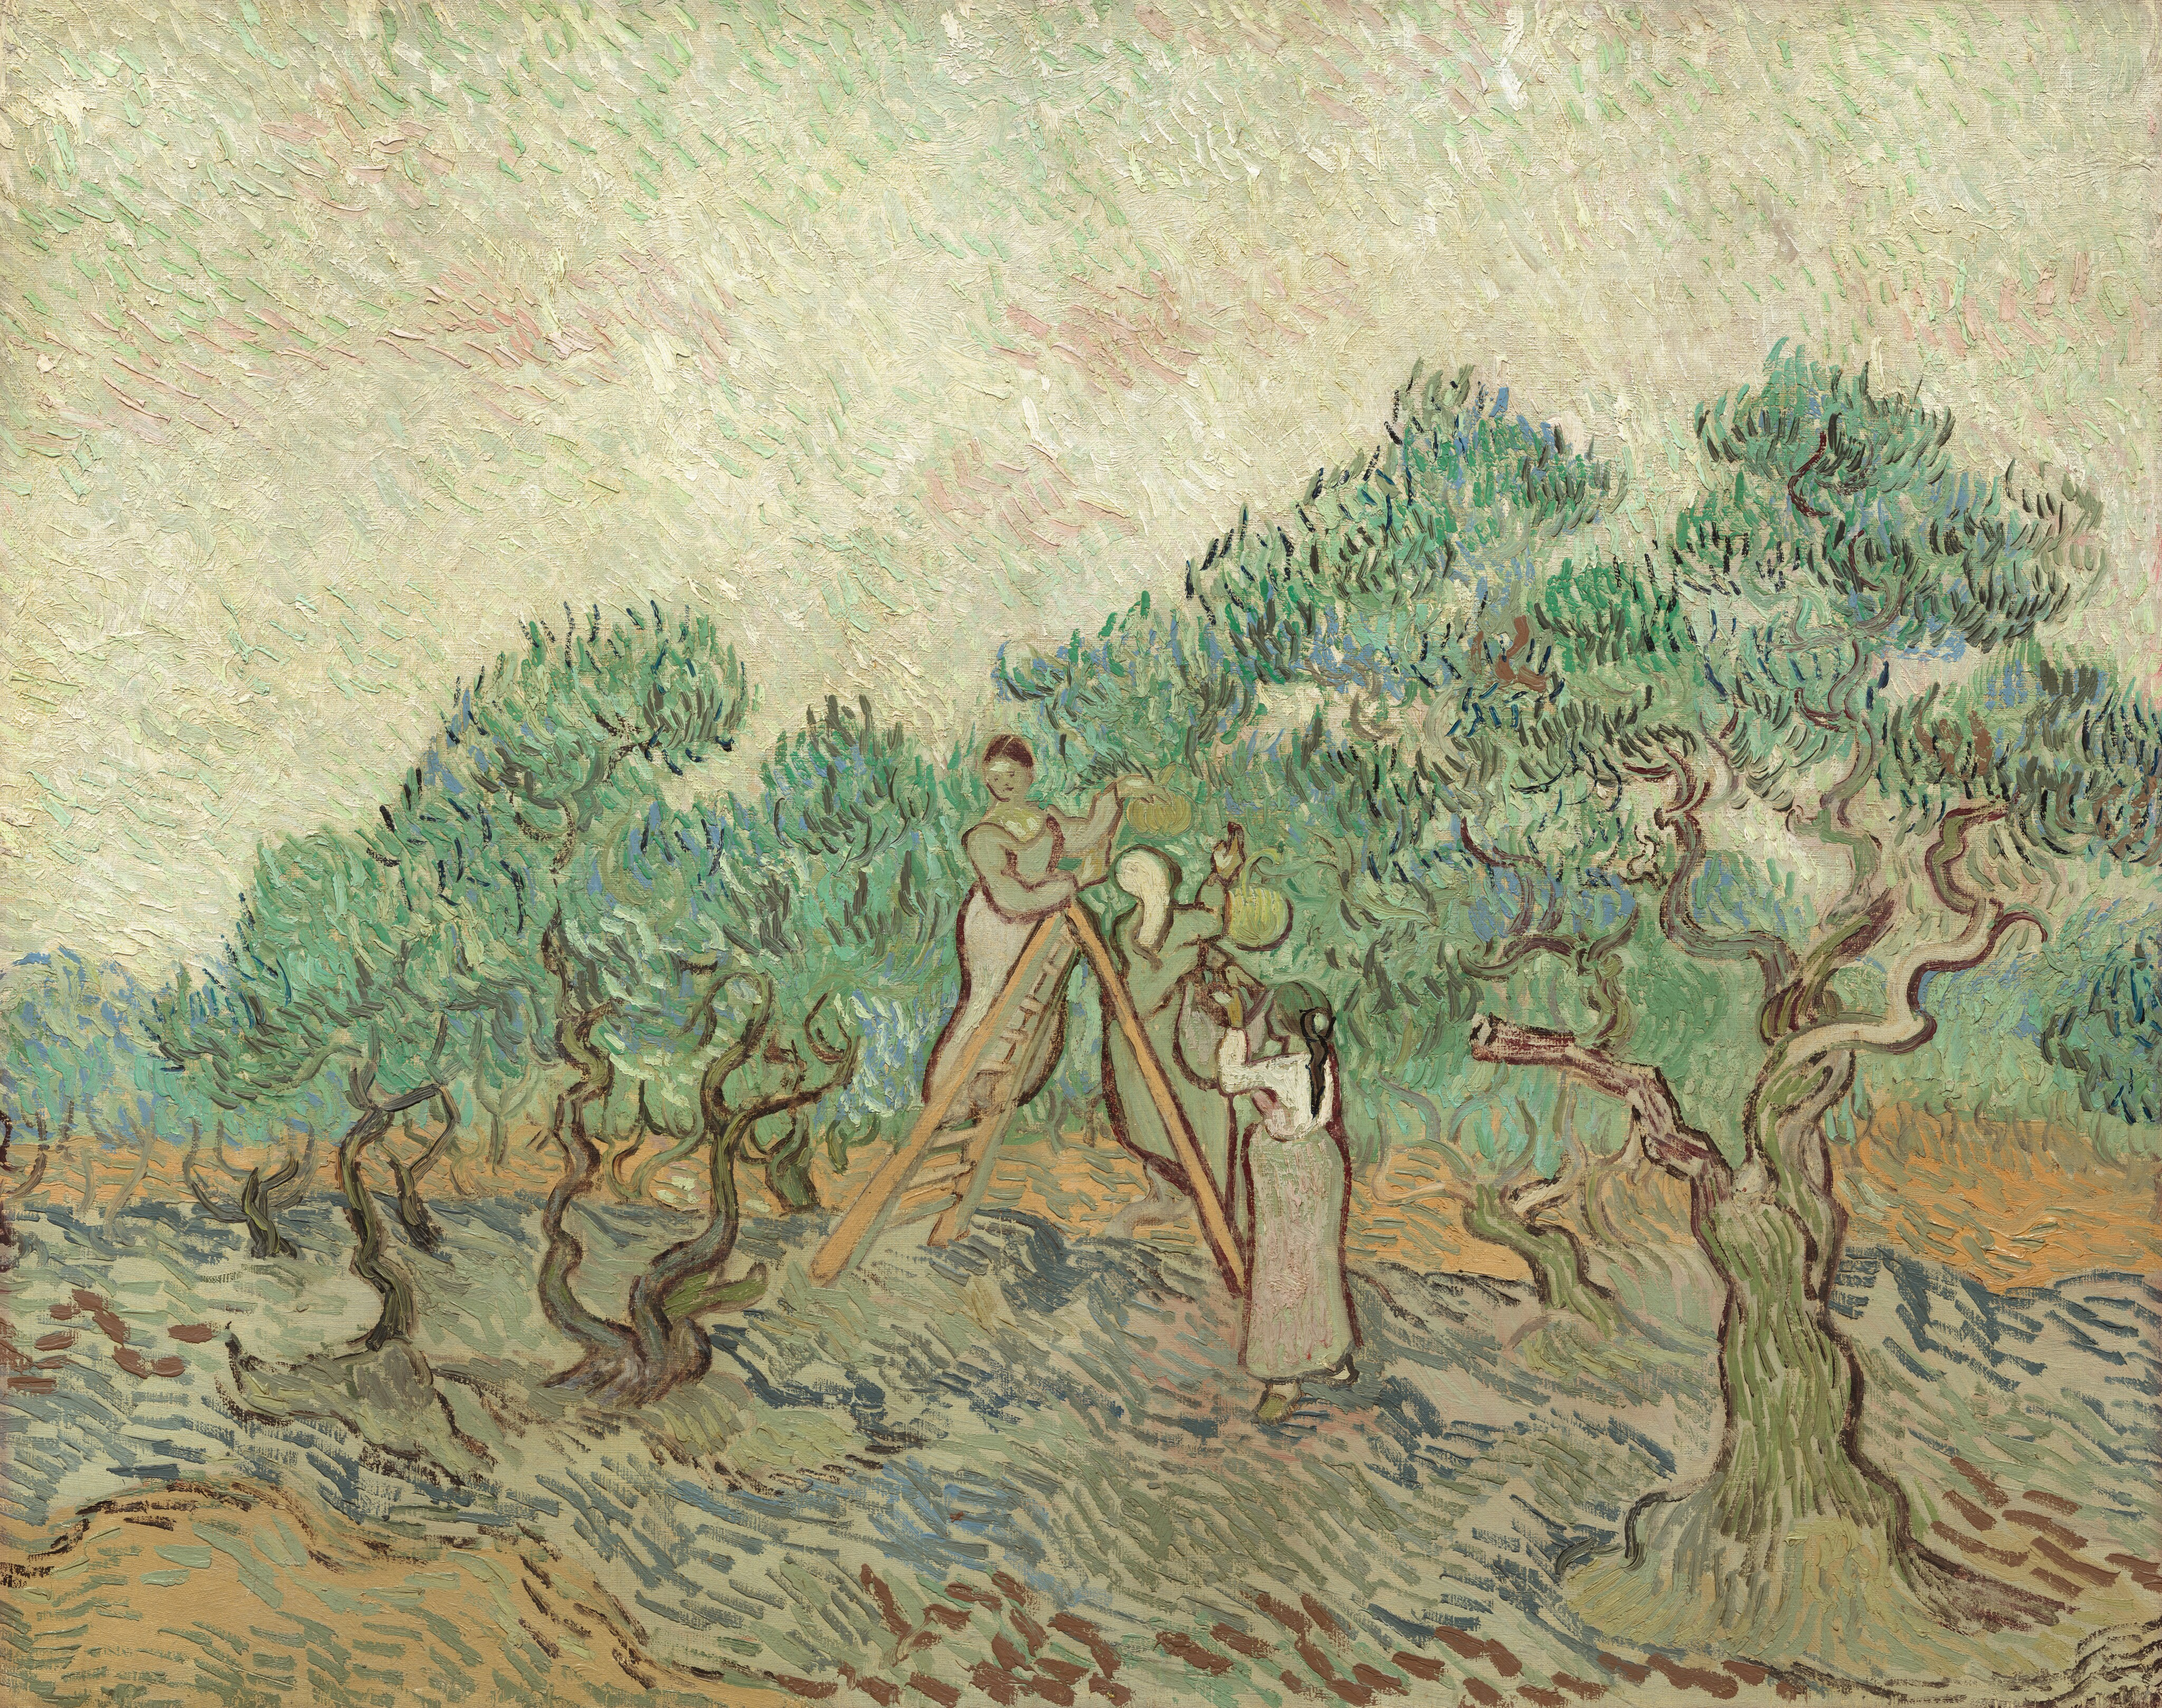 Van Gogh 1890 avril Femmes cuillant des olives F656 NGA Washington2